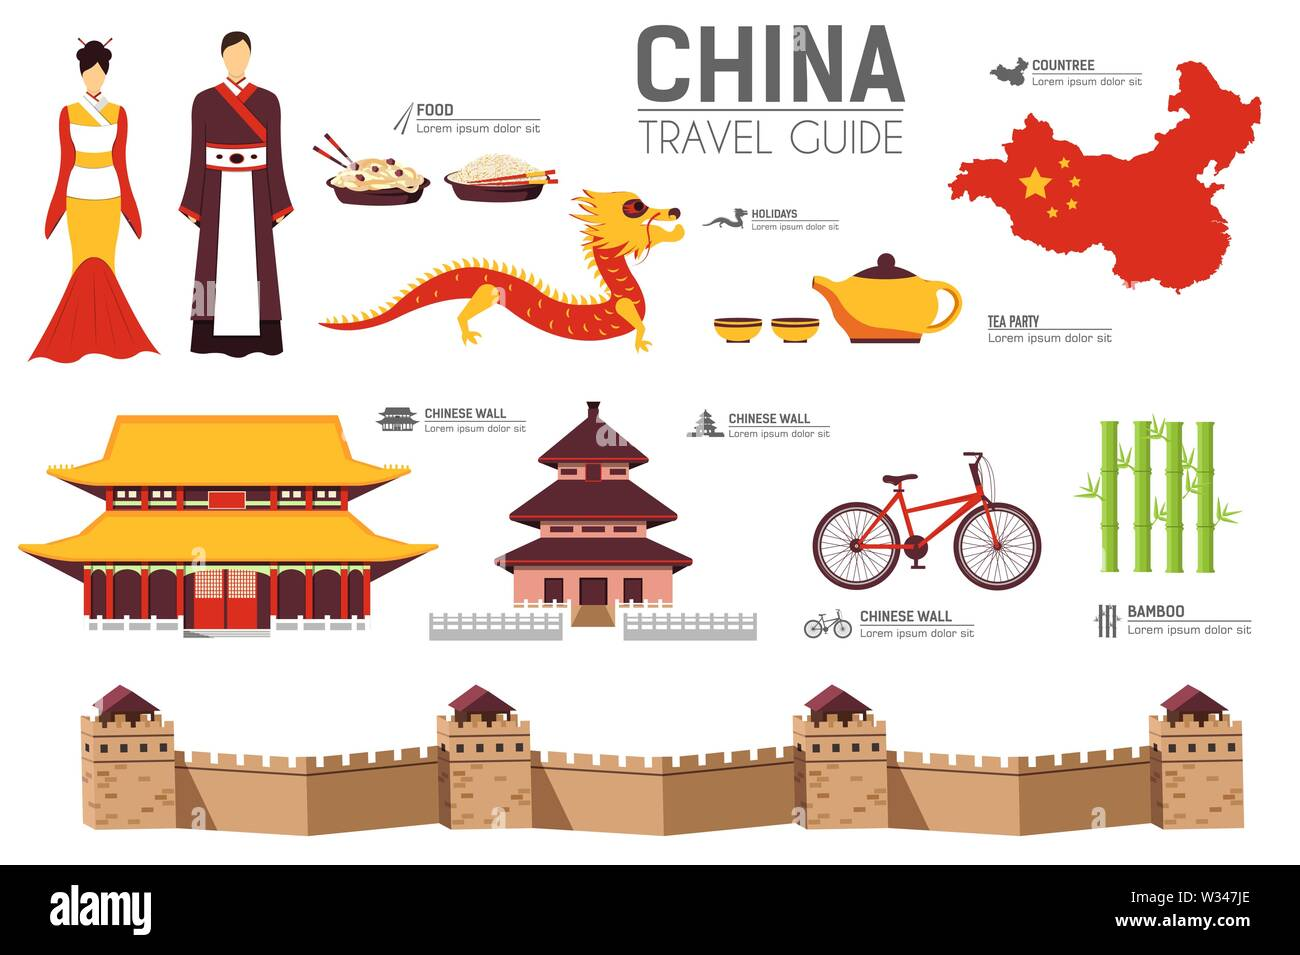 China travel guide template. Set of chinese landmarks, cuisine, traditions flat icons, pictograms on white. Sightseeing attractions and cultural symbo - Stock Image